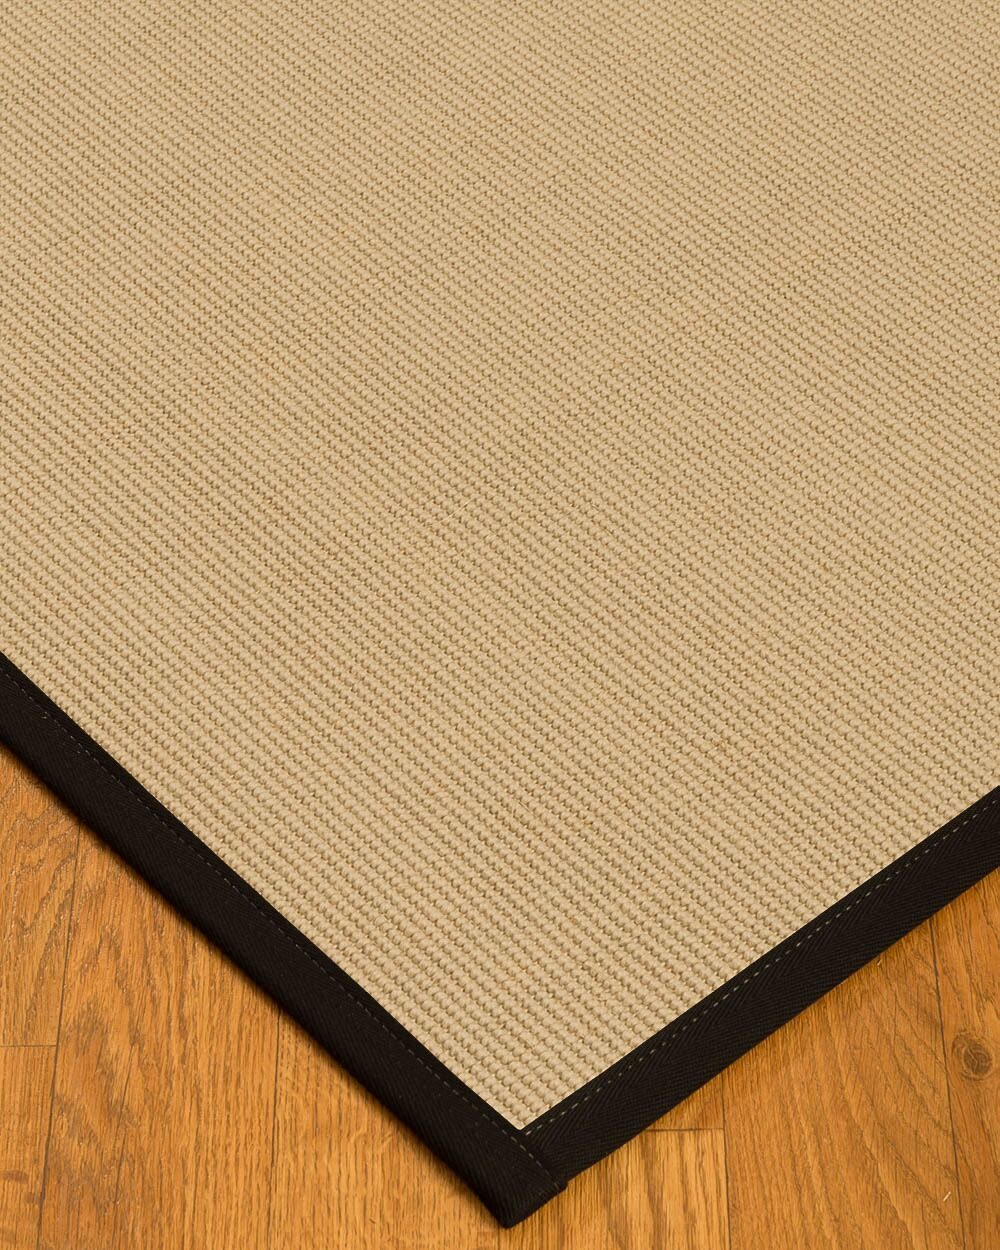 Vannatta Border Hand-Woven Wool Beige/Black Area Rug Rug Size: Rectangle 4' x 6', Rug Pad Included: Yes